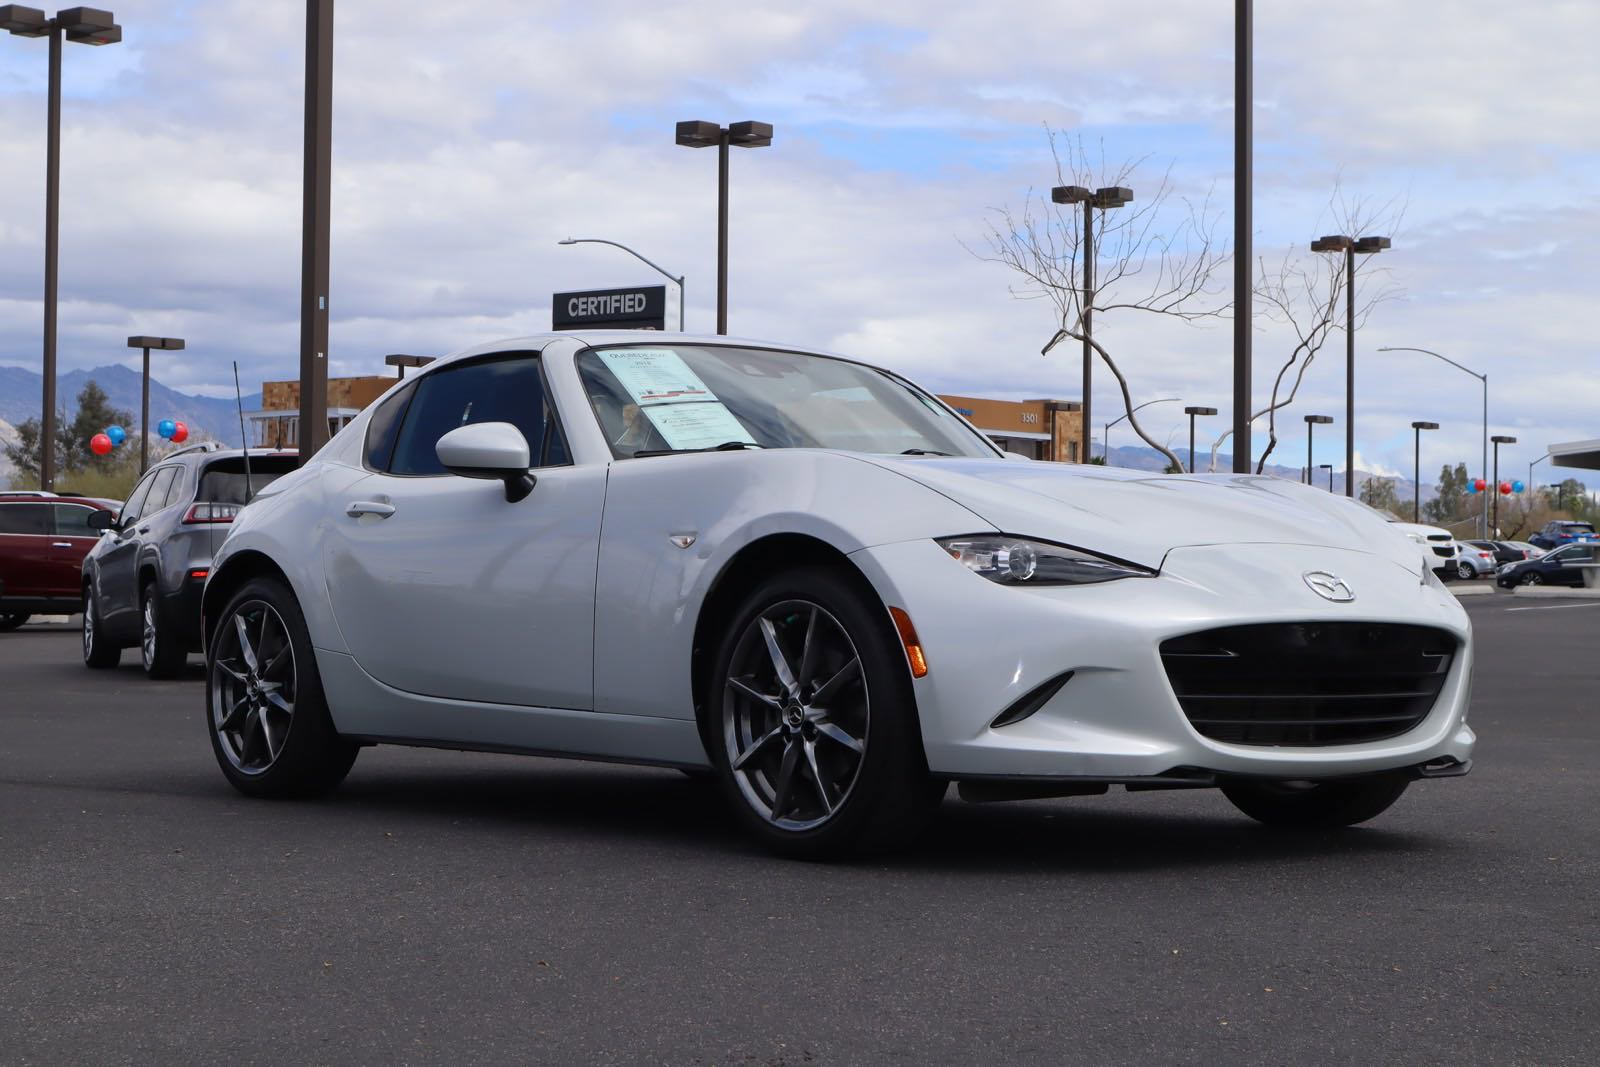 2018 MAZDA MX-5 Miata RF Grand Touring image